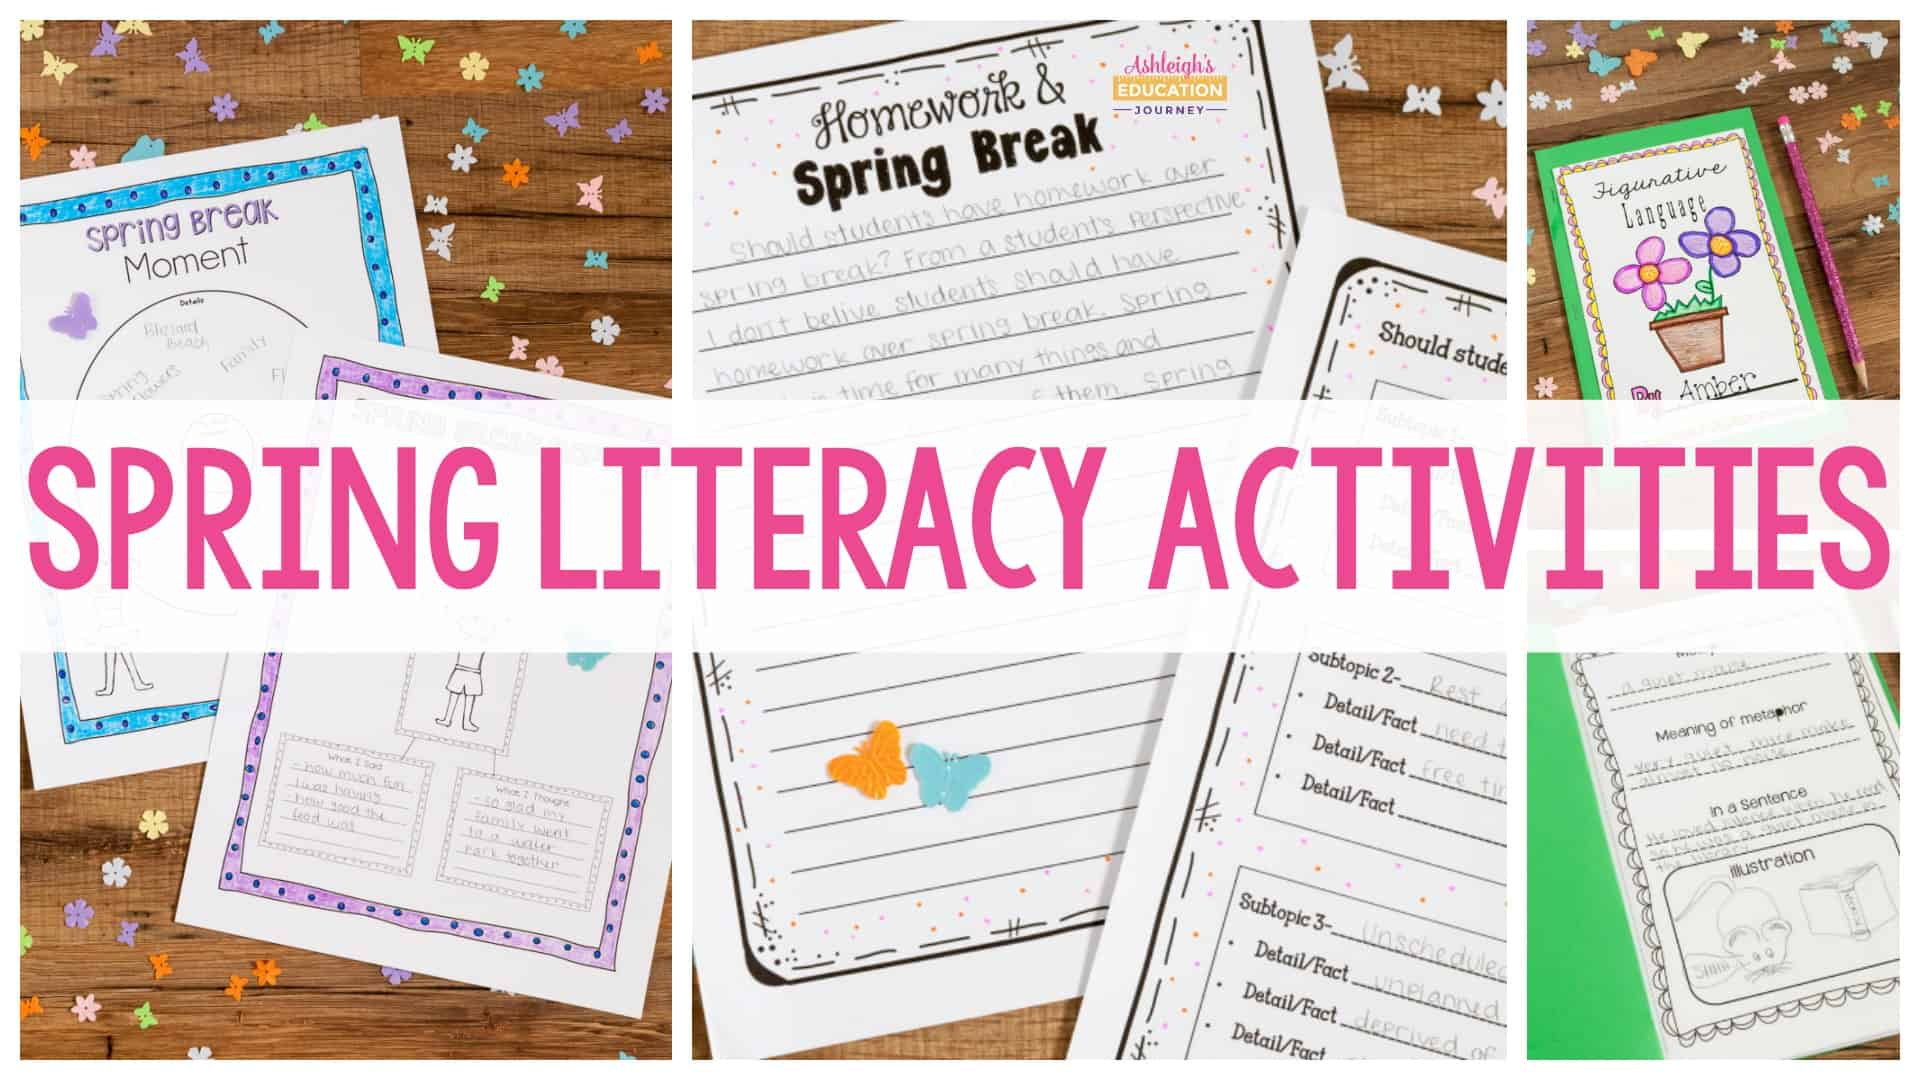 Spring Literacy Activities header with worksheets in background